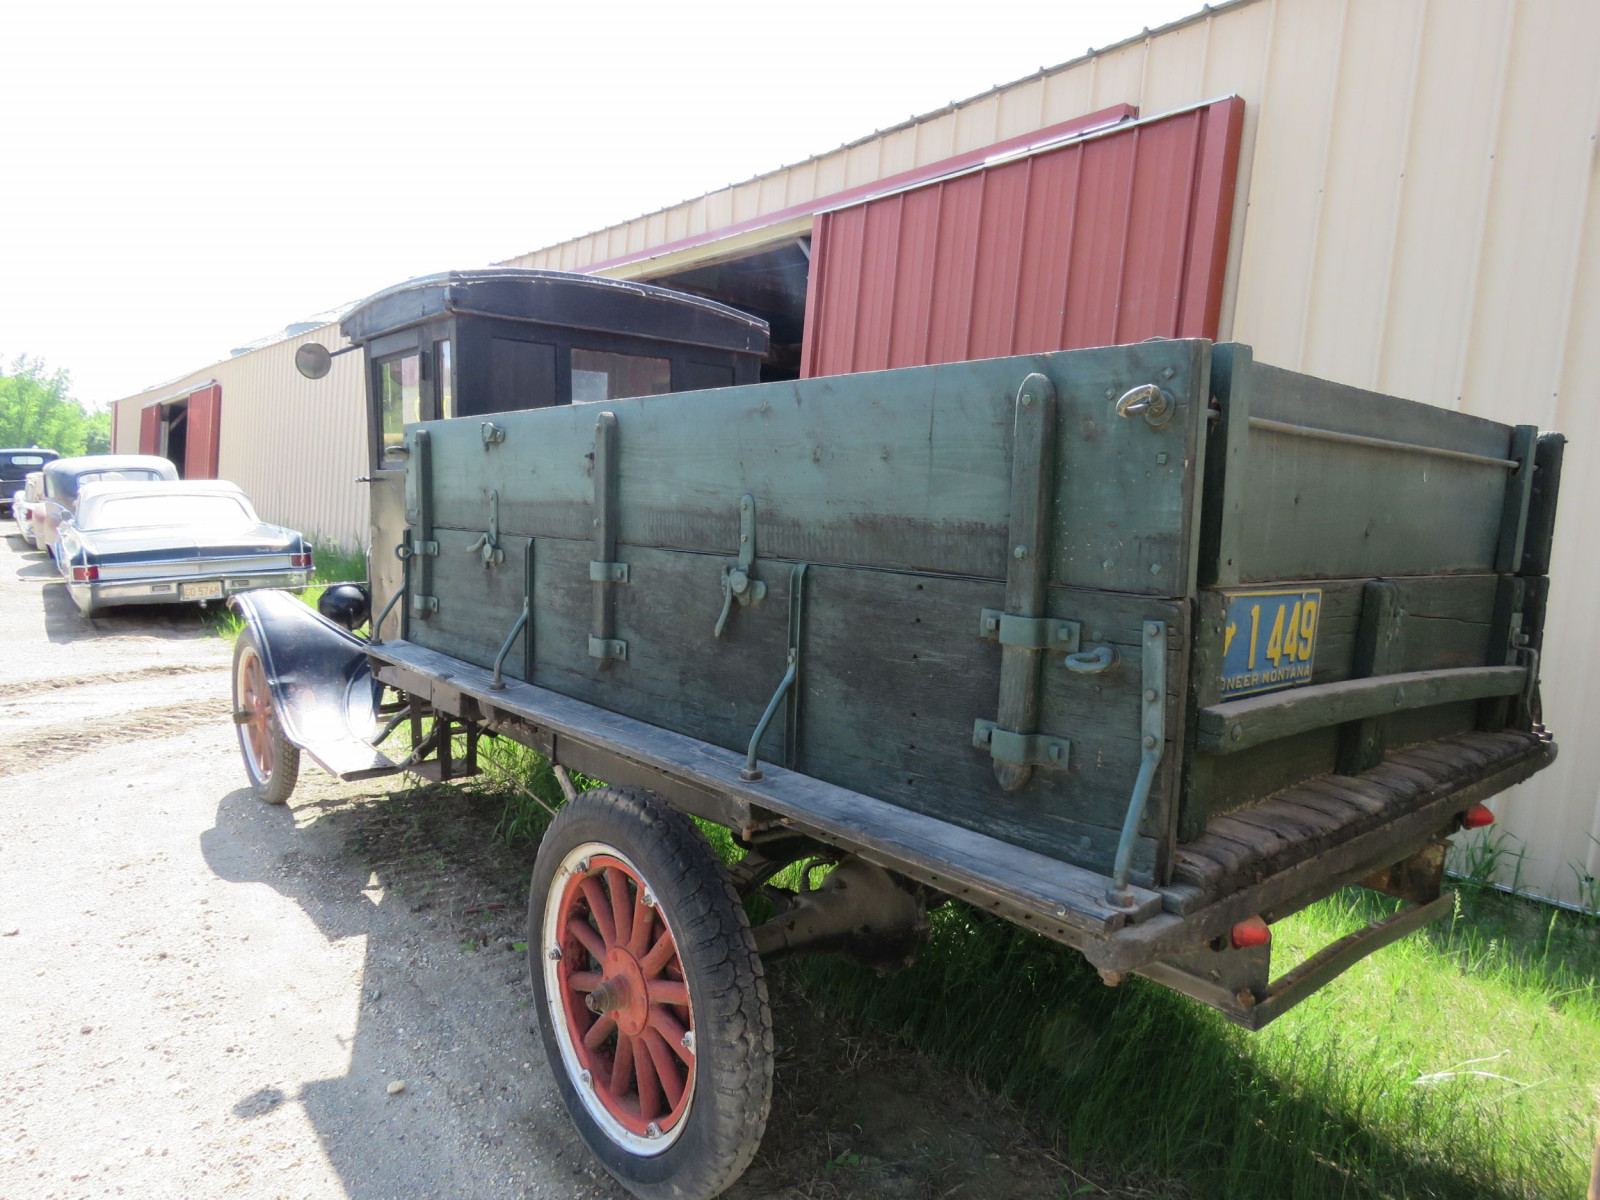 Ford Model T Truck - Image 6